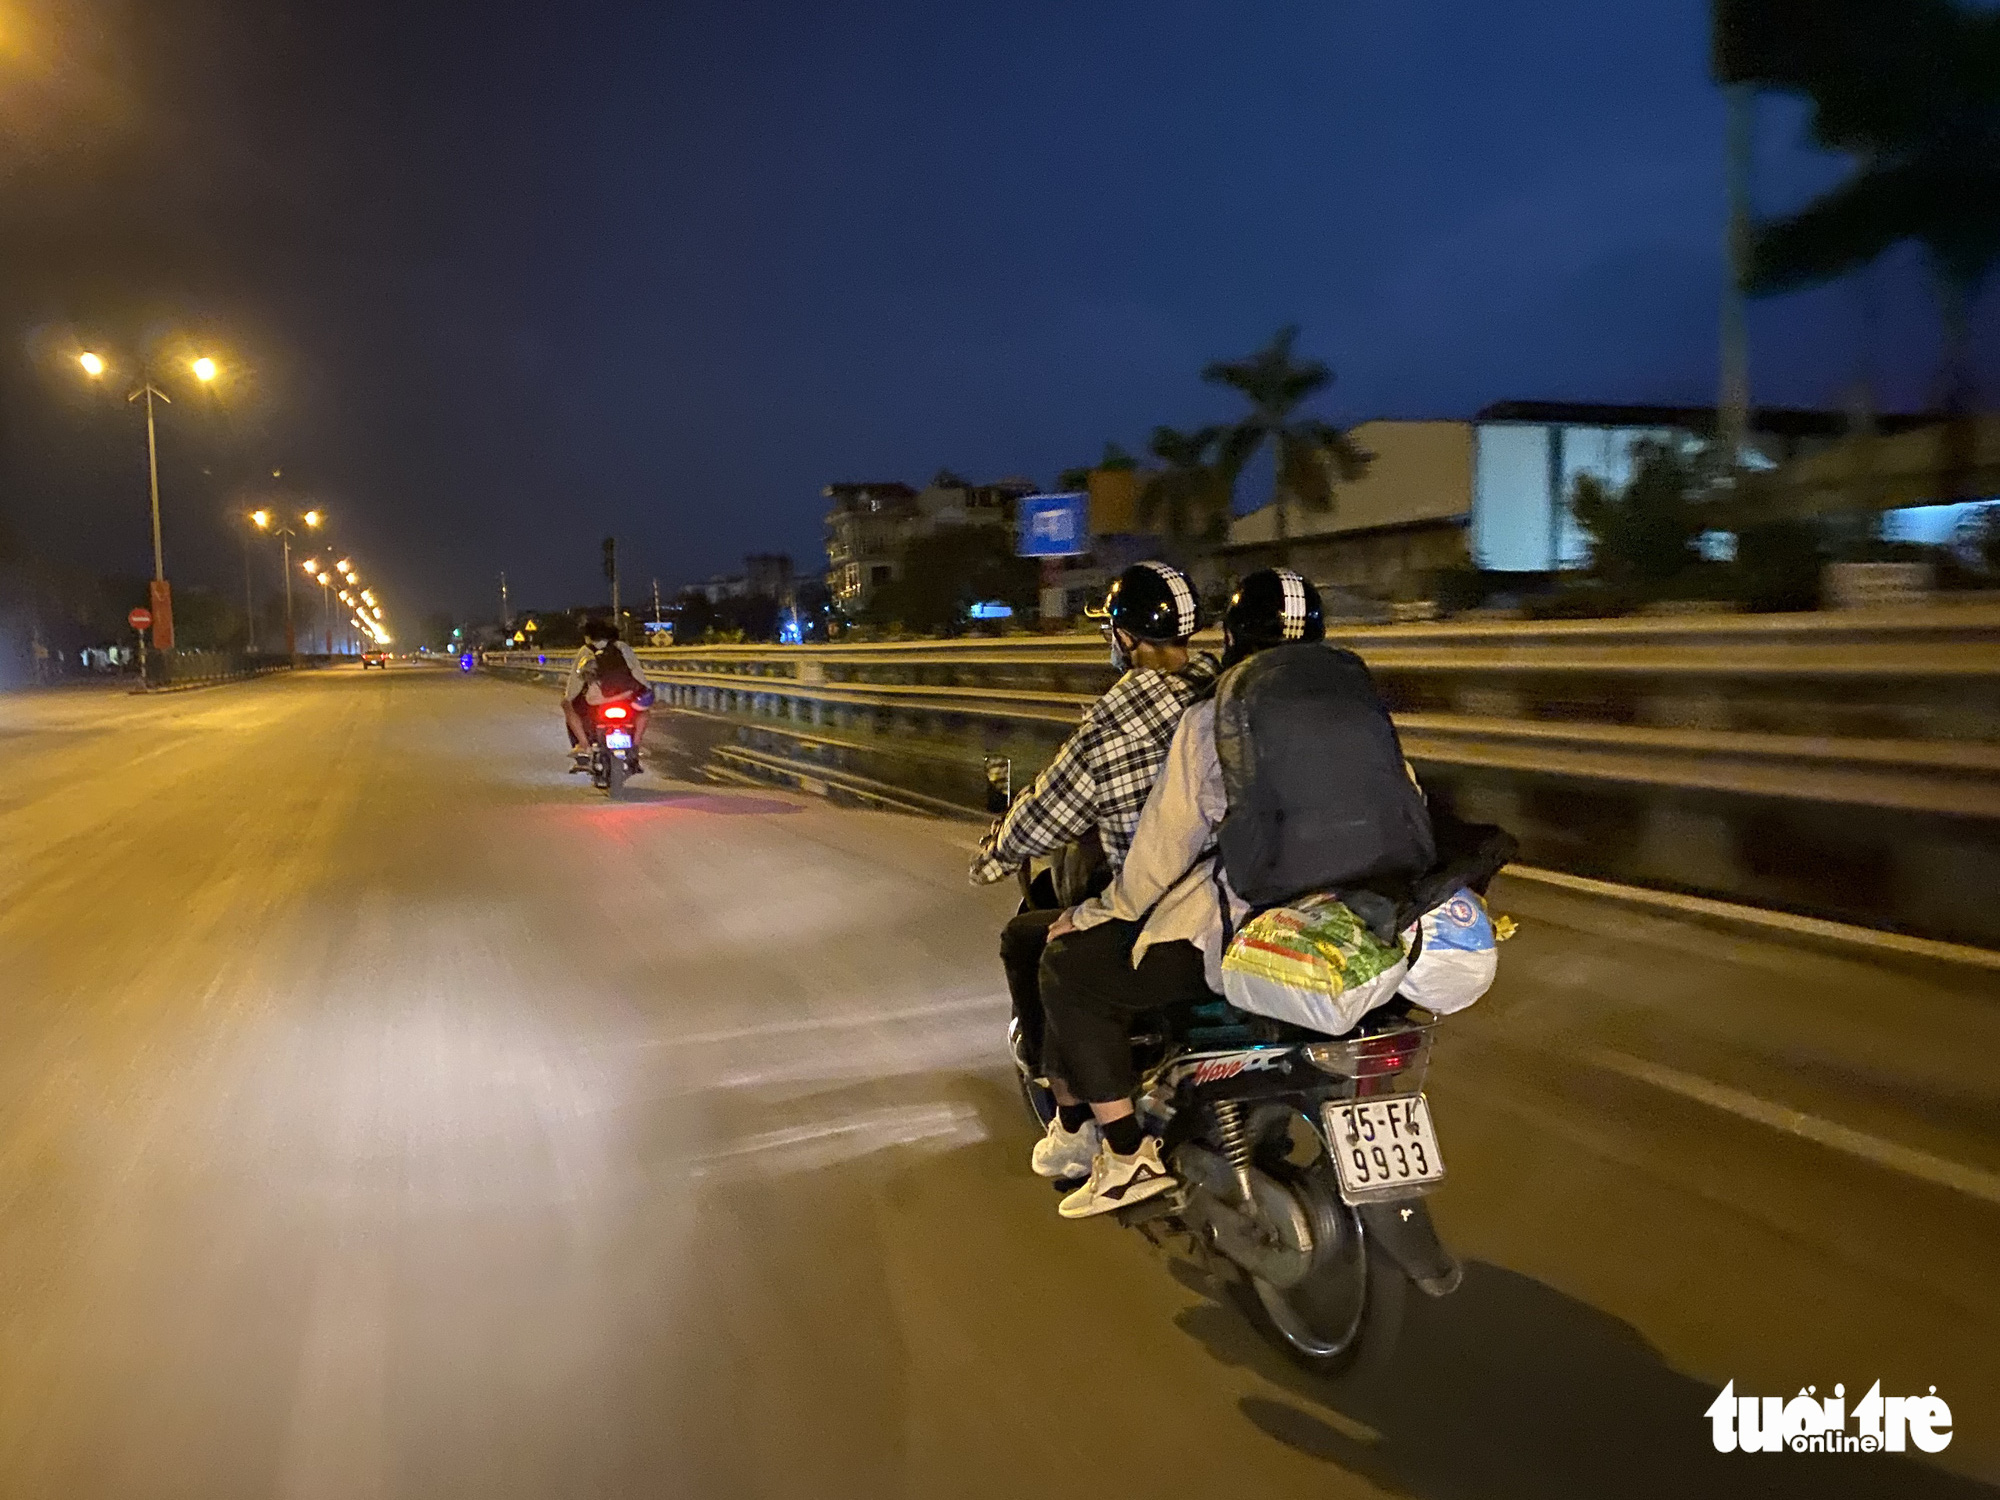 People exit Hanoi on motorbike on National Highway 1A in Thanh Tri District, July 24, 2021. Photo: Pham Tuan / Tuoi Tre